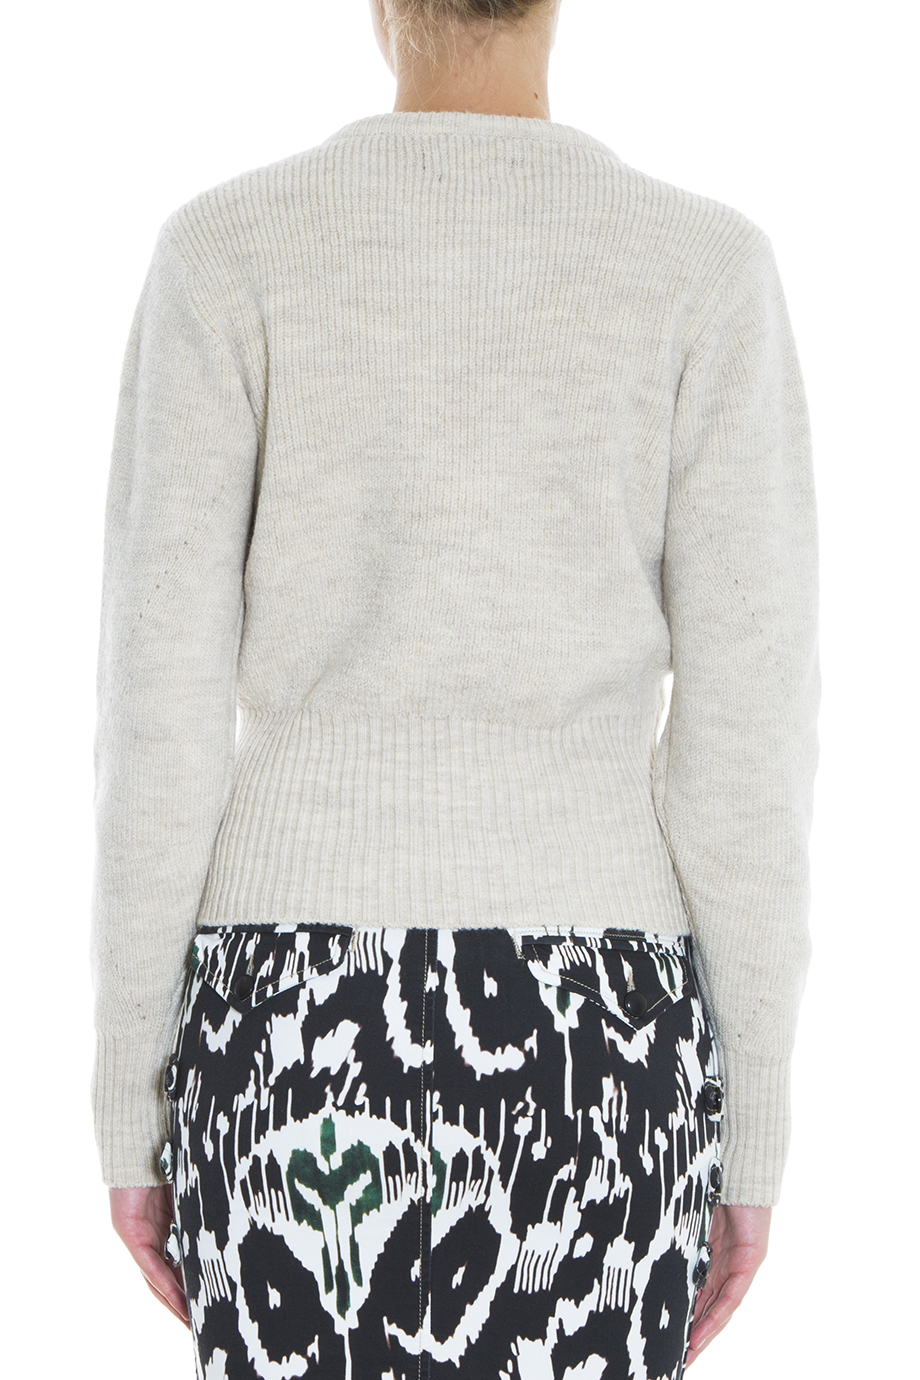 67640653aa Lyst - Isabel Marant Charley Sweater in White